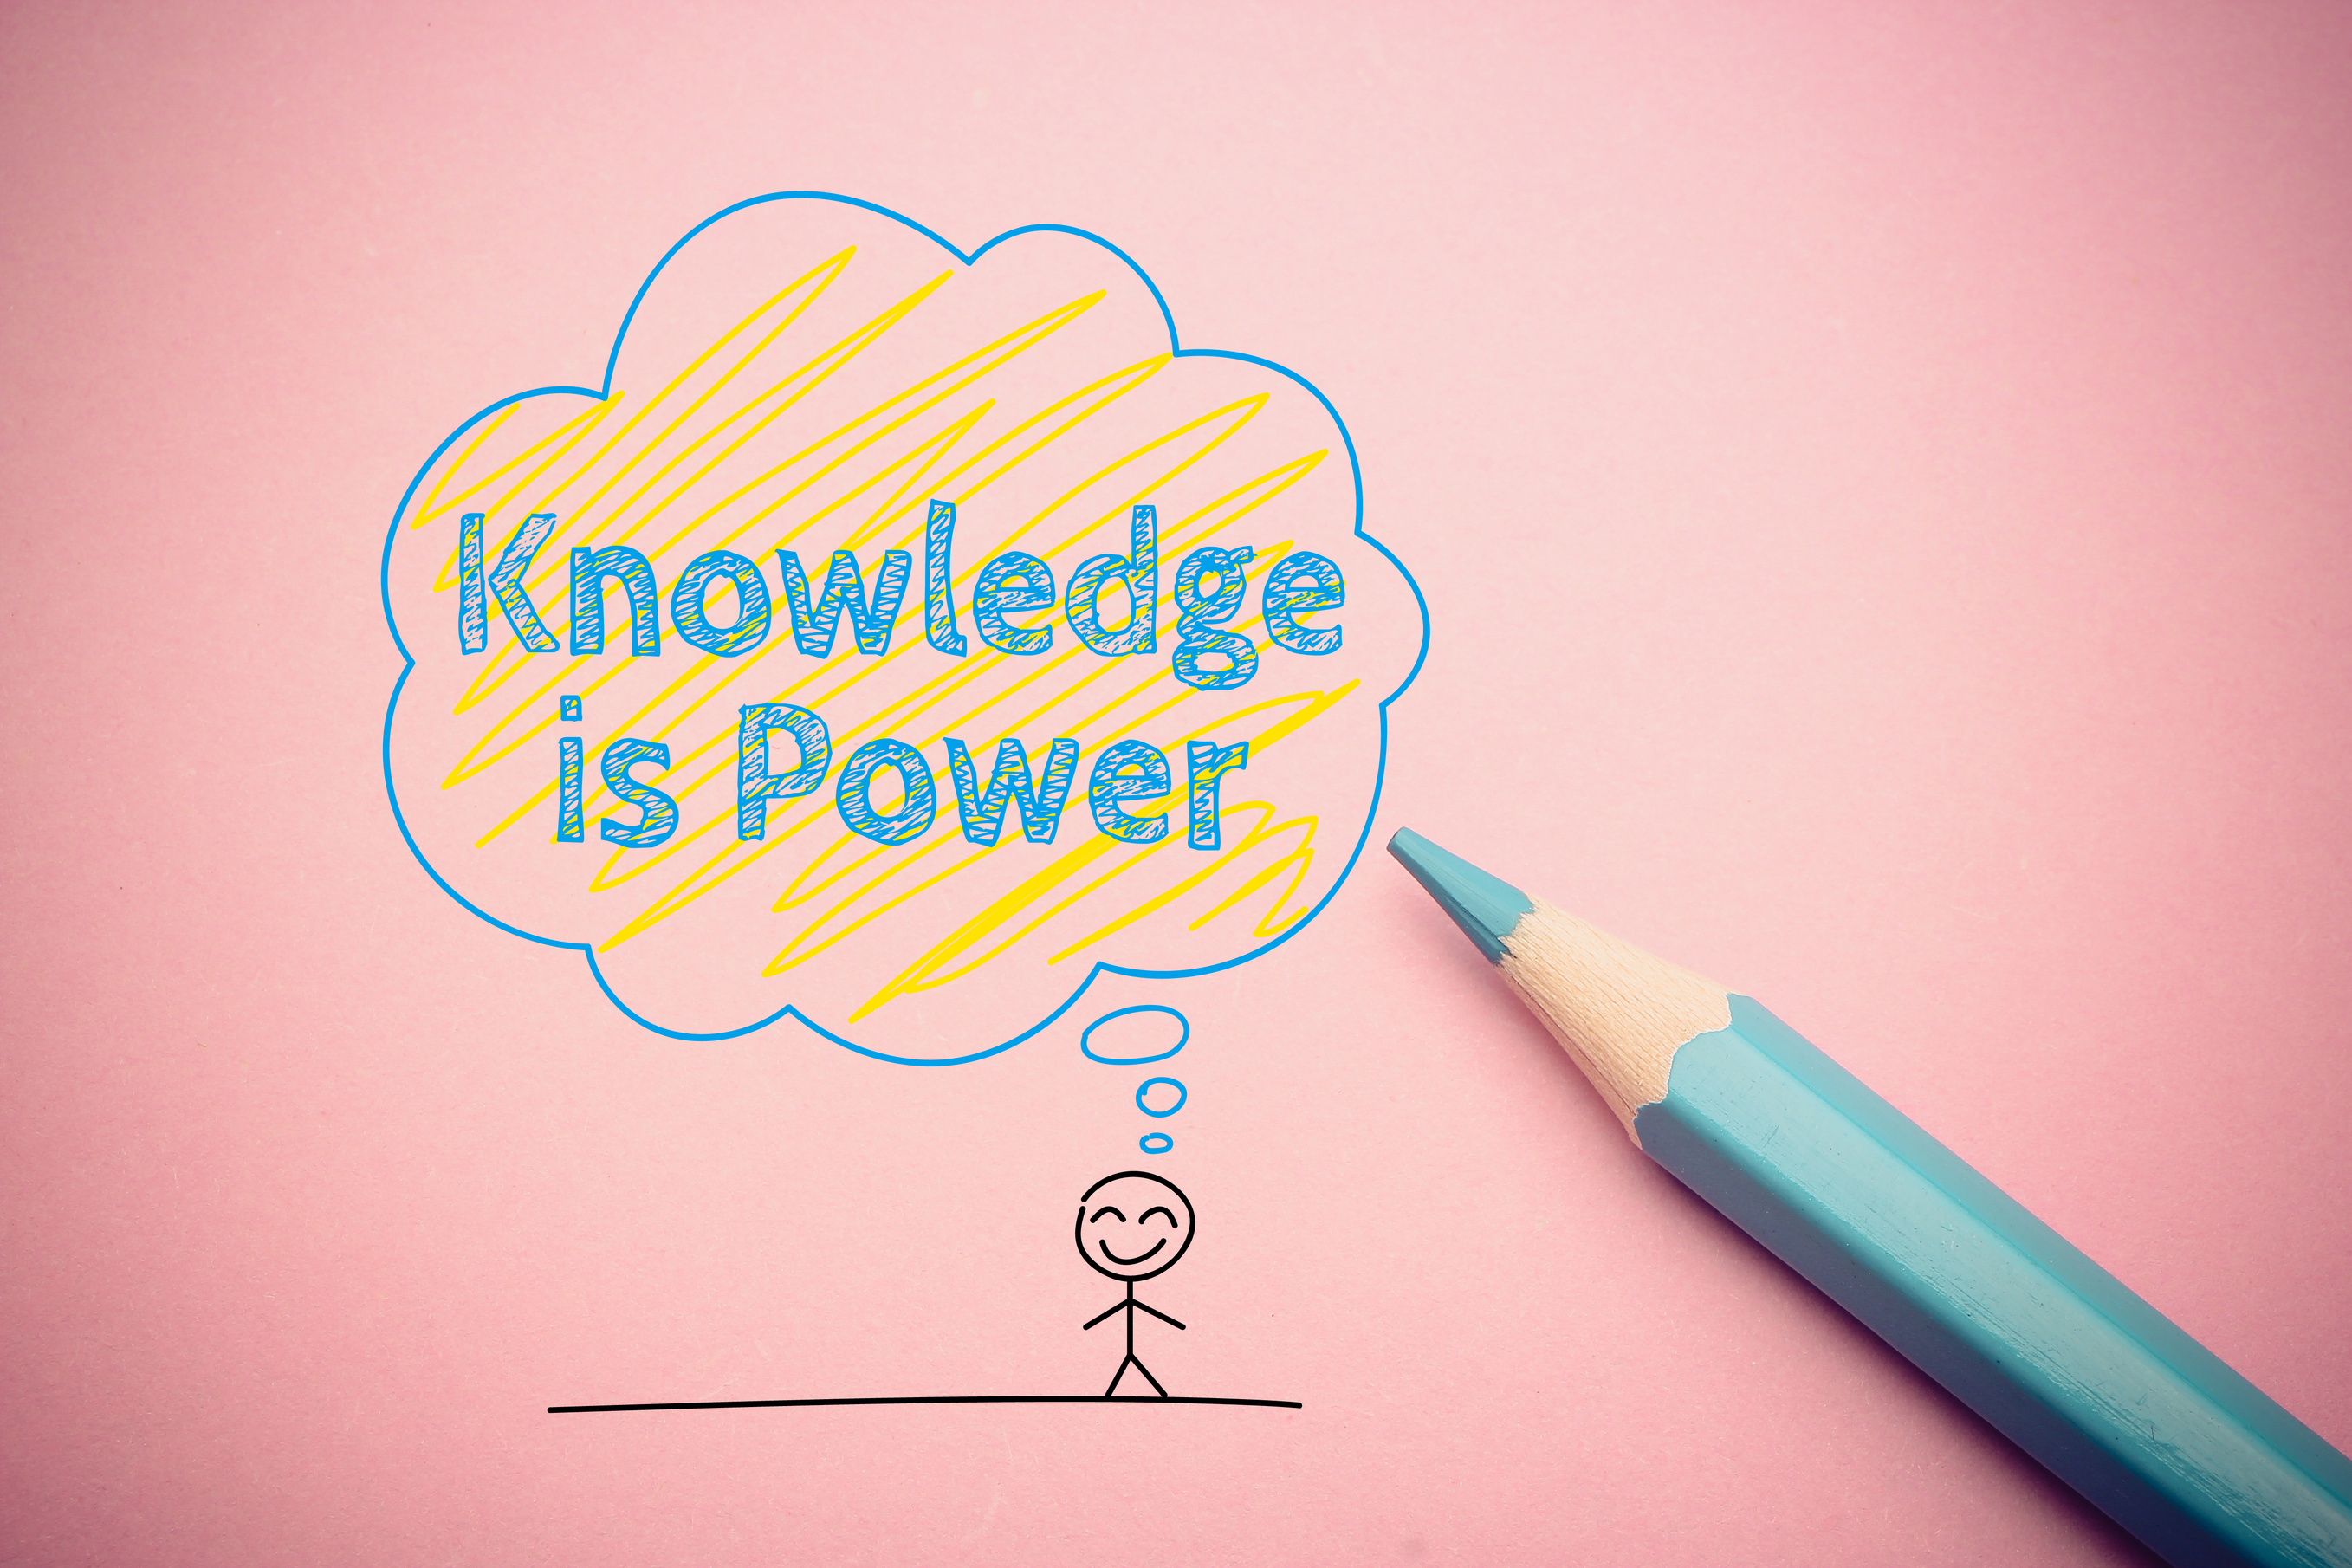 essay writing on knowledge is power Anti essays offers essay examples to help students with their essay writing below is an essay on knowledge is power from anti essays, your source for research papers, essays humans are all taught knowledge is power at a young age, but we do not know if that statement is necessarily correct.